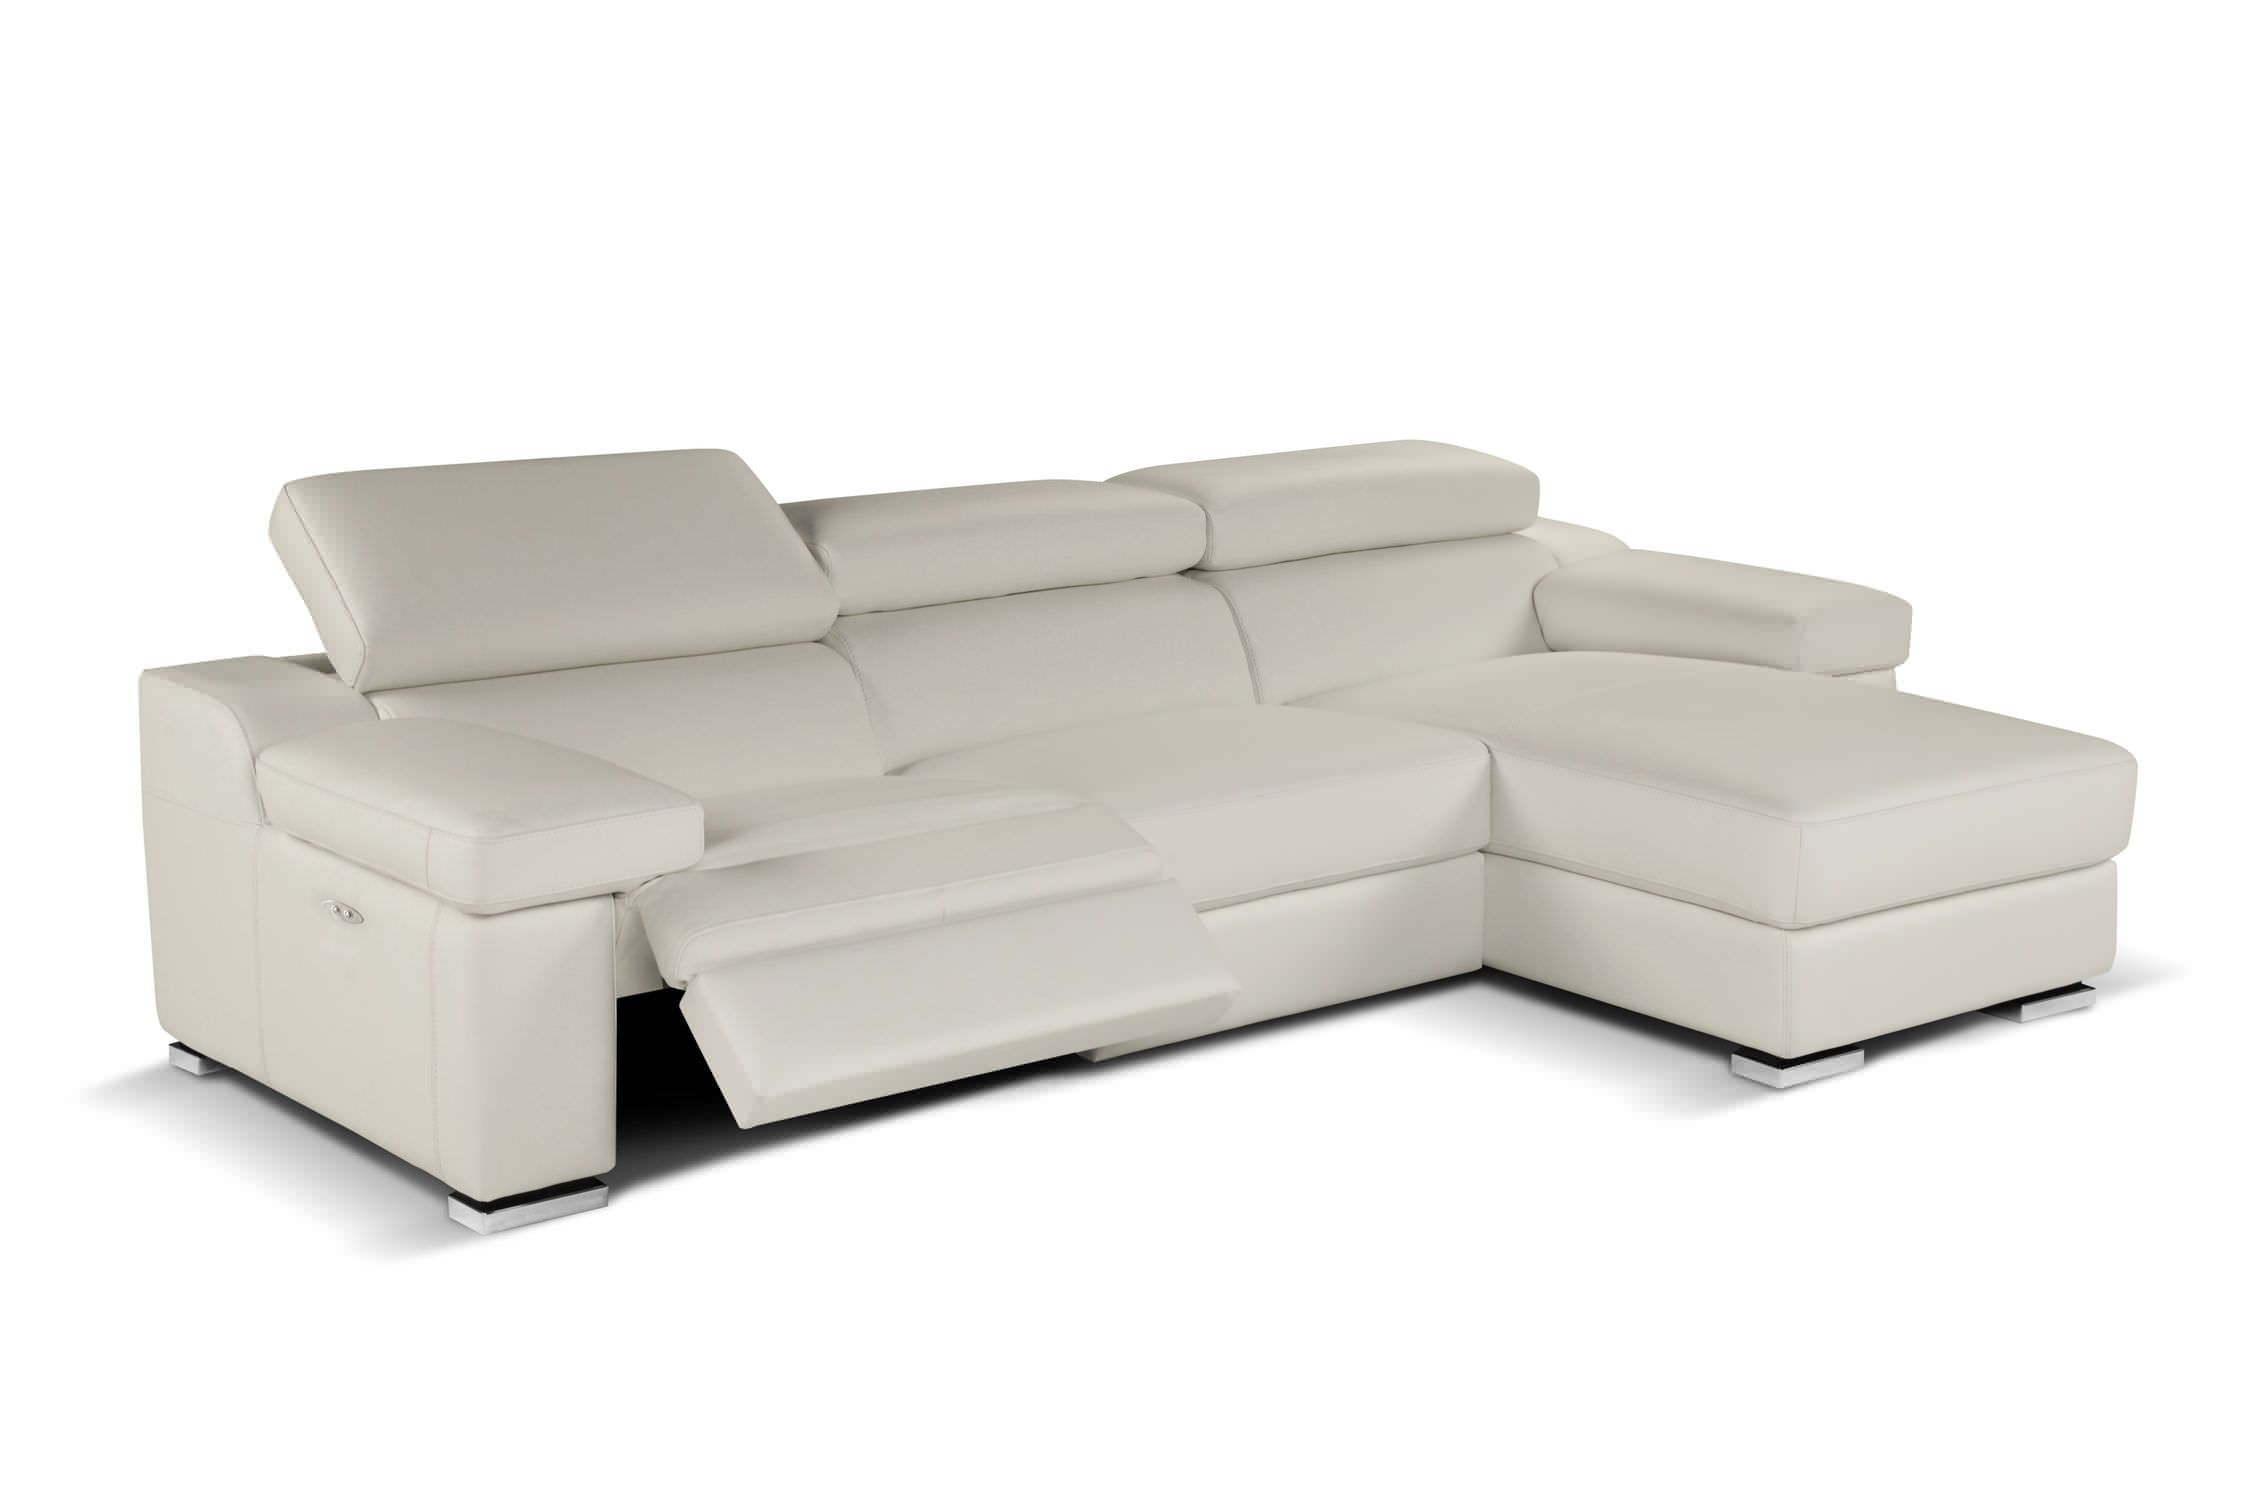 Discover All The Information About The Product Contemporary Sofa / Leather  / / Reclining REBECCA   Caliaitalia And Find Where You Can Buy It.